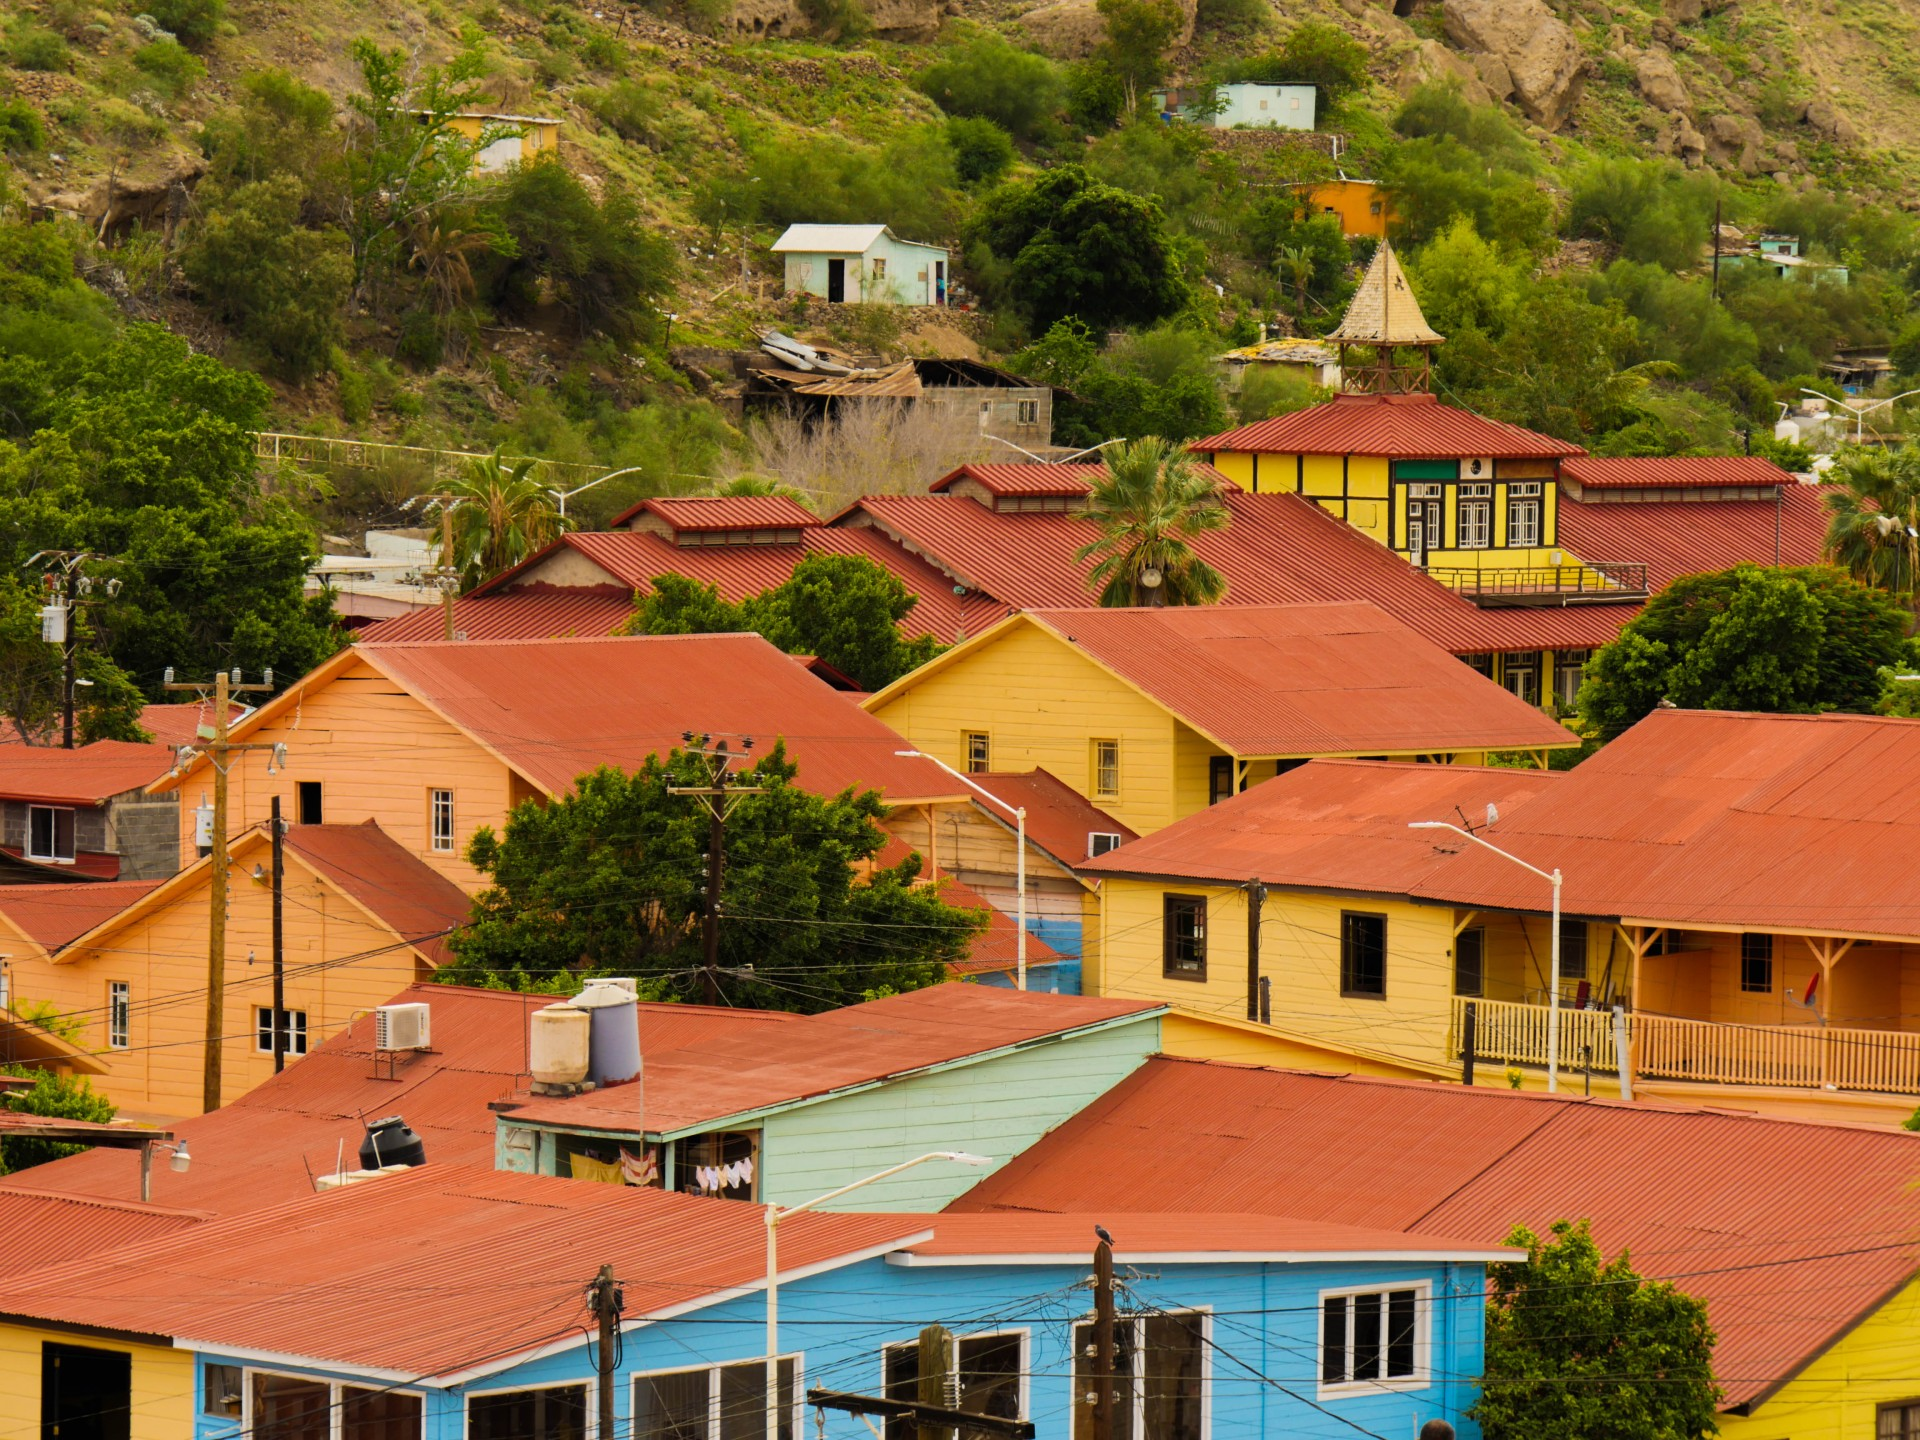 The roofs and colorful clapboard in the center of Santa Rosalía.